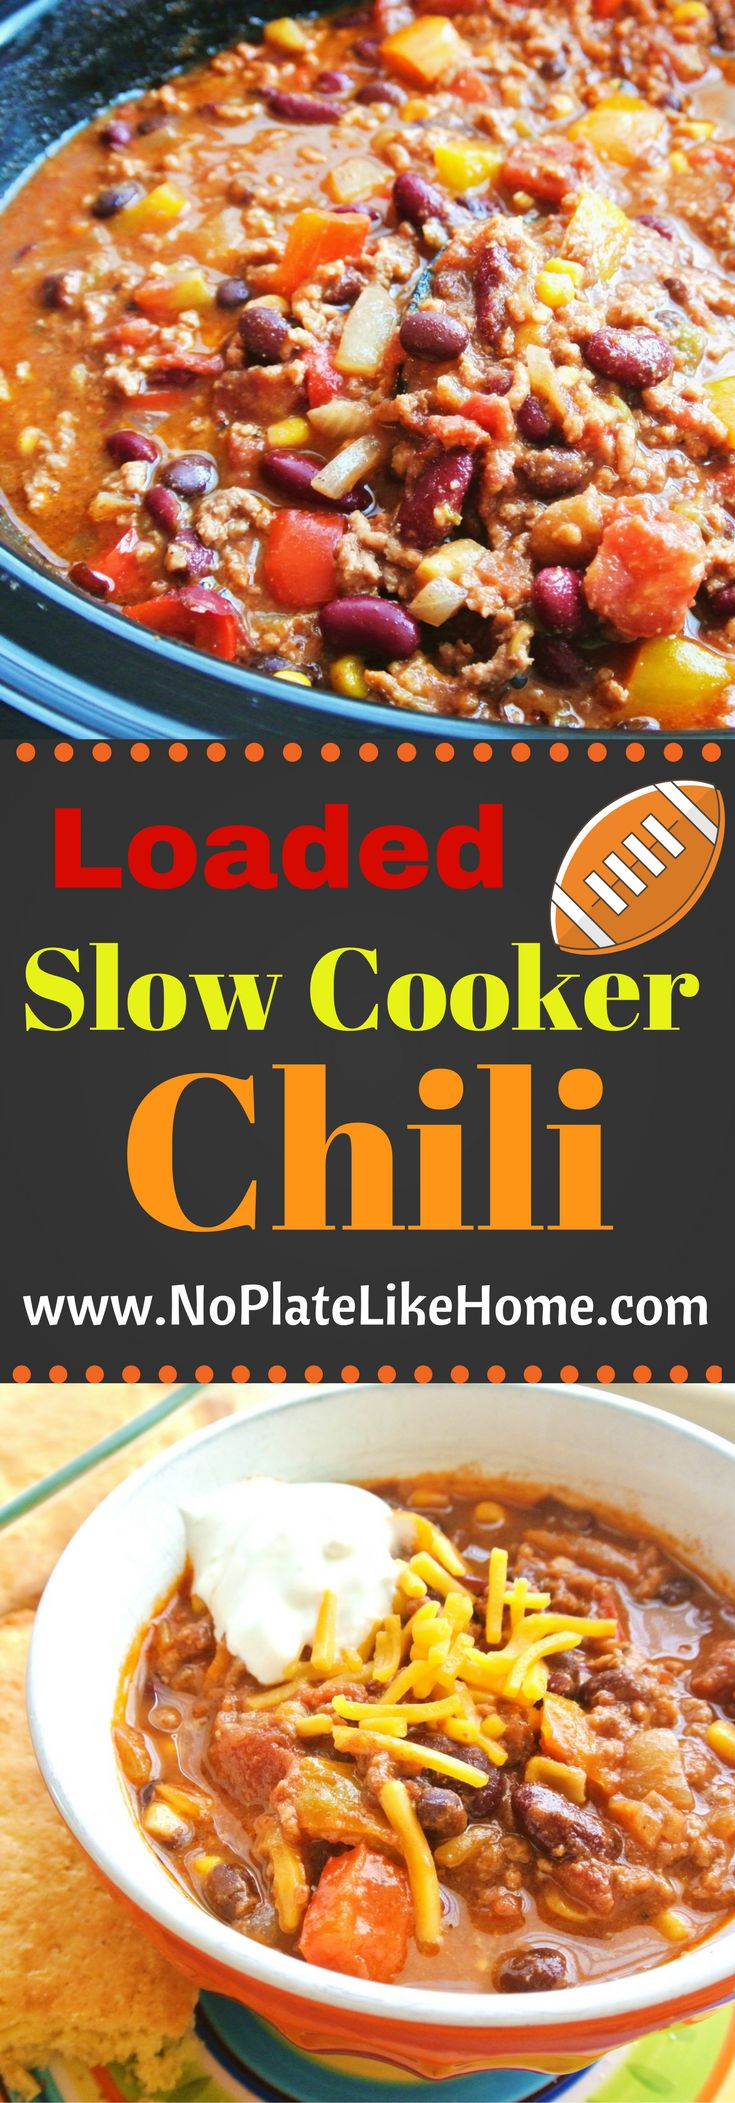 A tasty homemade and easy 5 hr slow cooker chili loaded with ground beef, red kidney beans, black beans, red, yellow and orange bell peppers, canned tomatoes, and chili spices for the best comfort food. Can't wait? Stove top directions included. Perfect for parties! Pin for later. #chili #chilirecipes #slowcooker #easyrecipes #gamedaychili